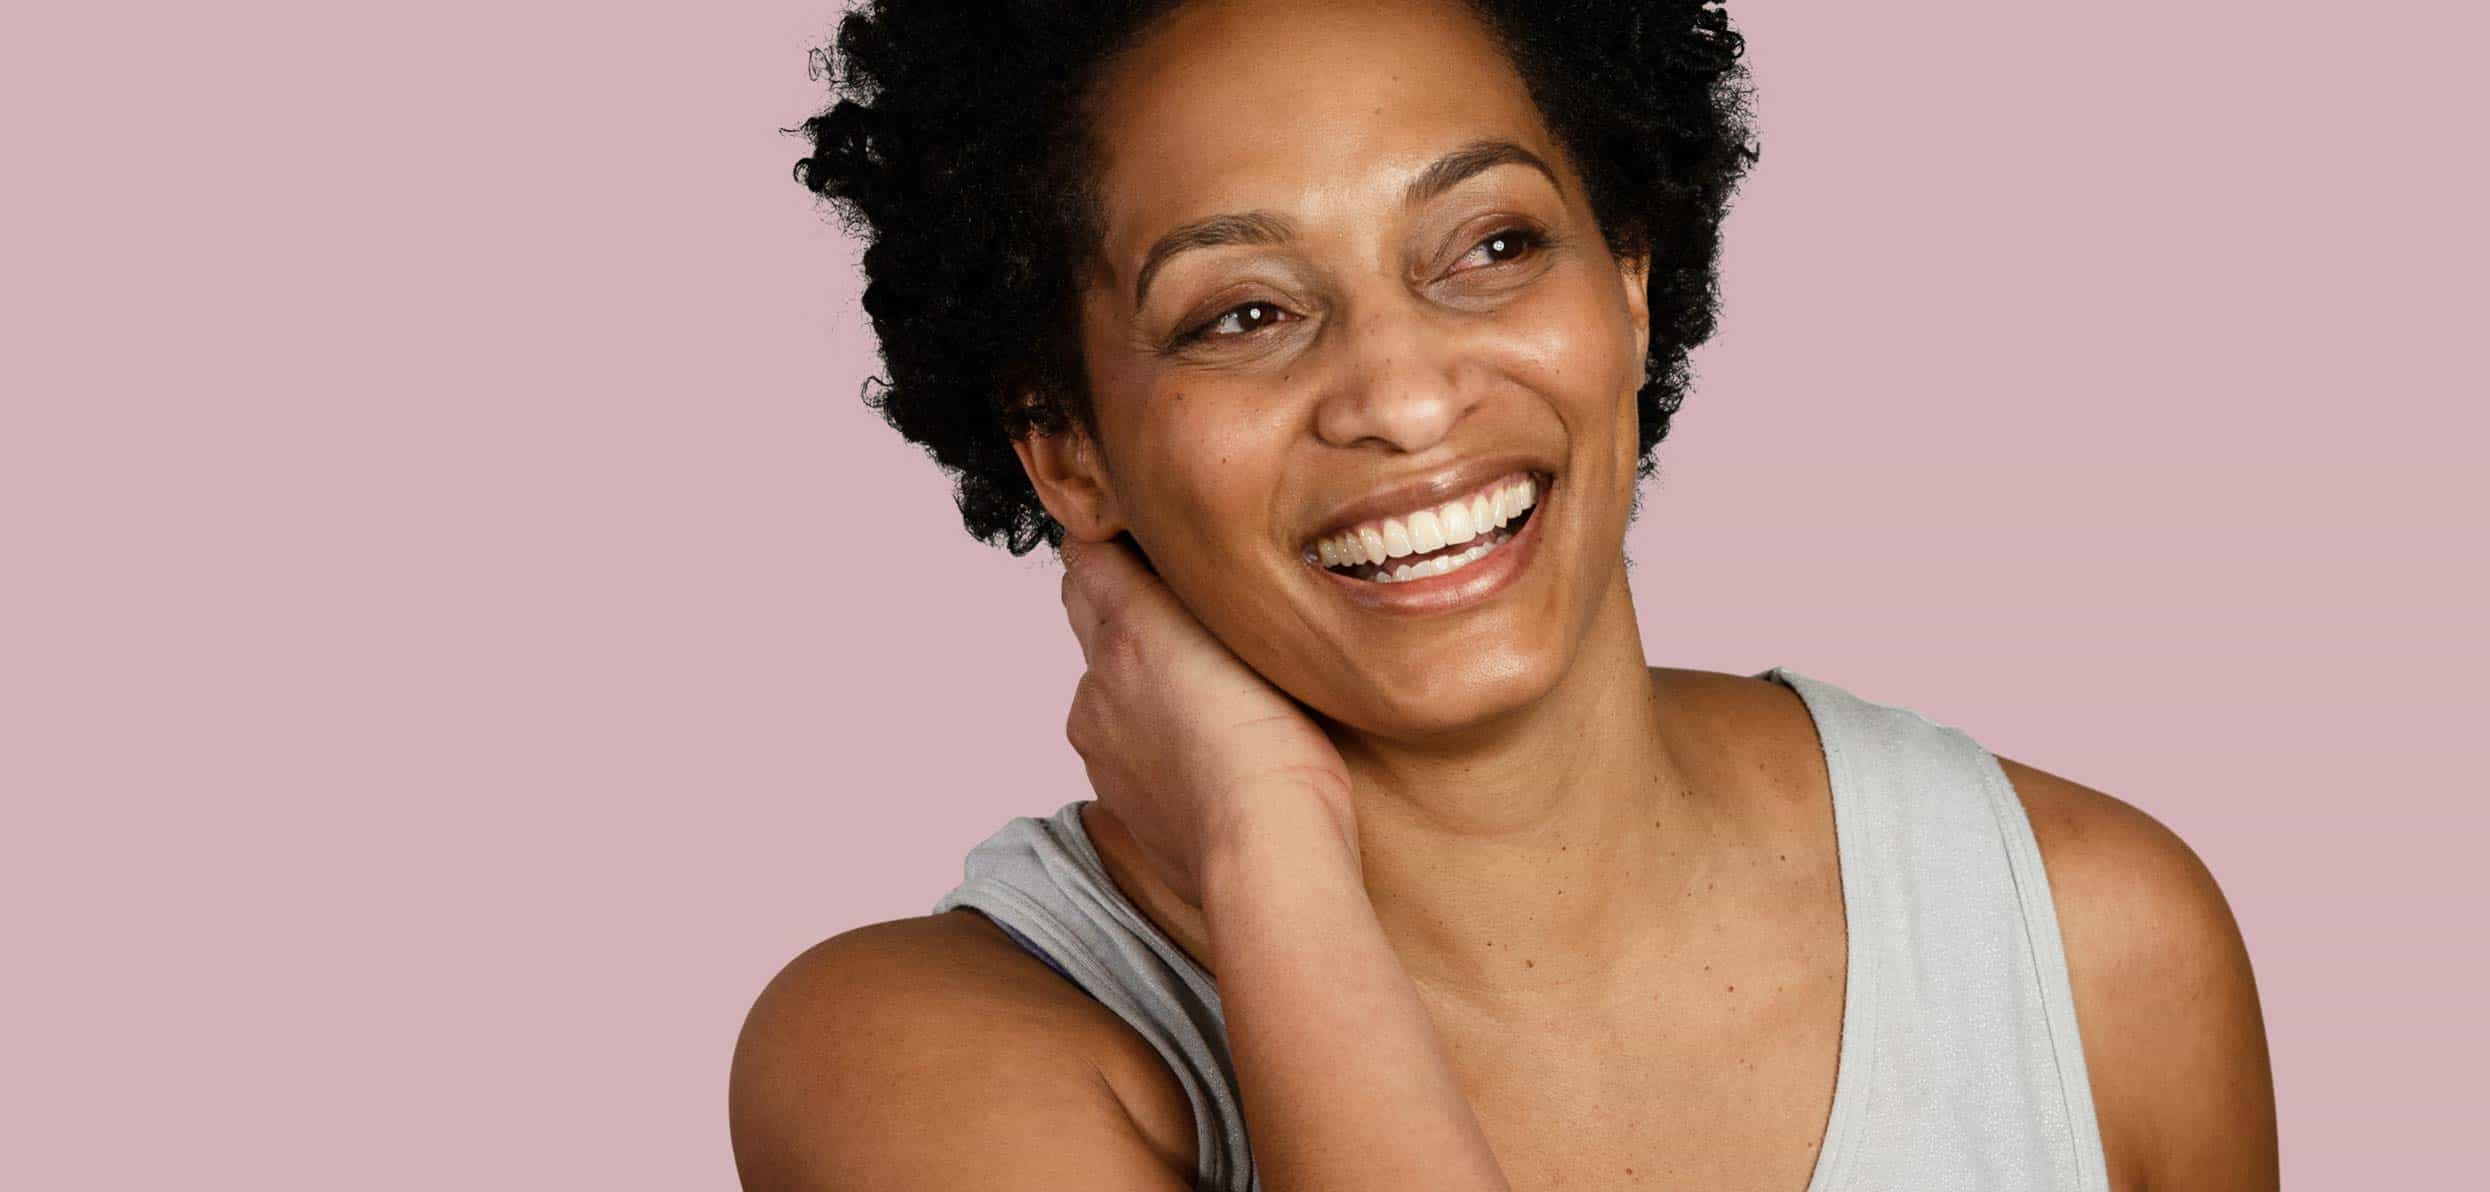 Happy black woman - natural ways to lose weight